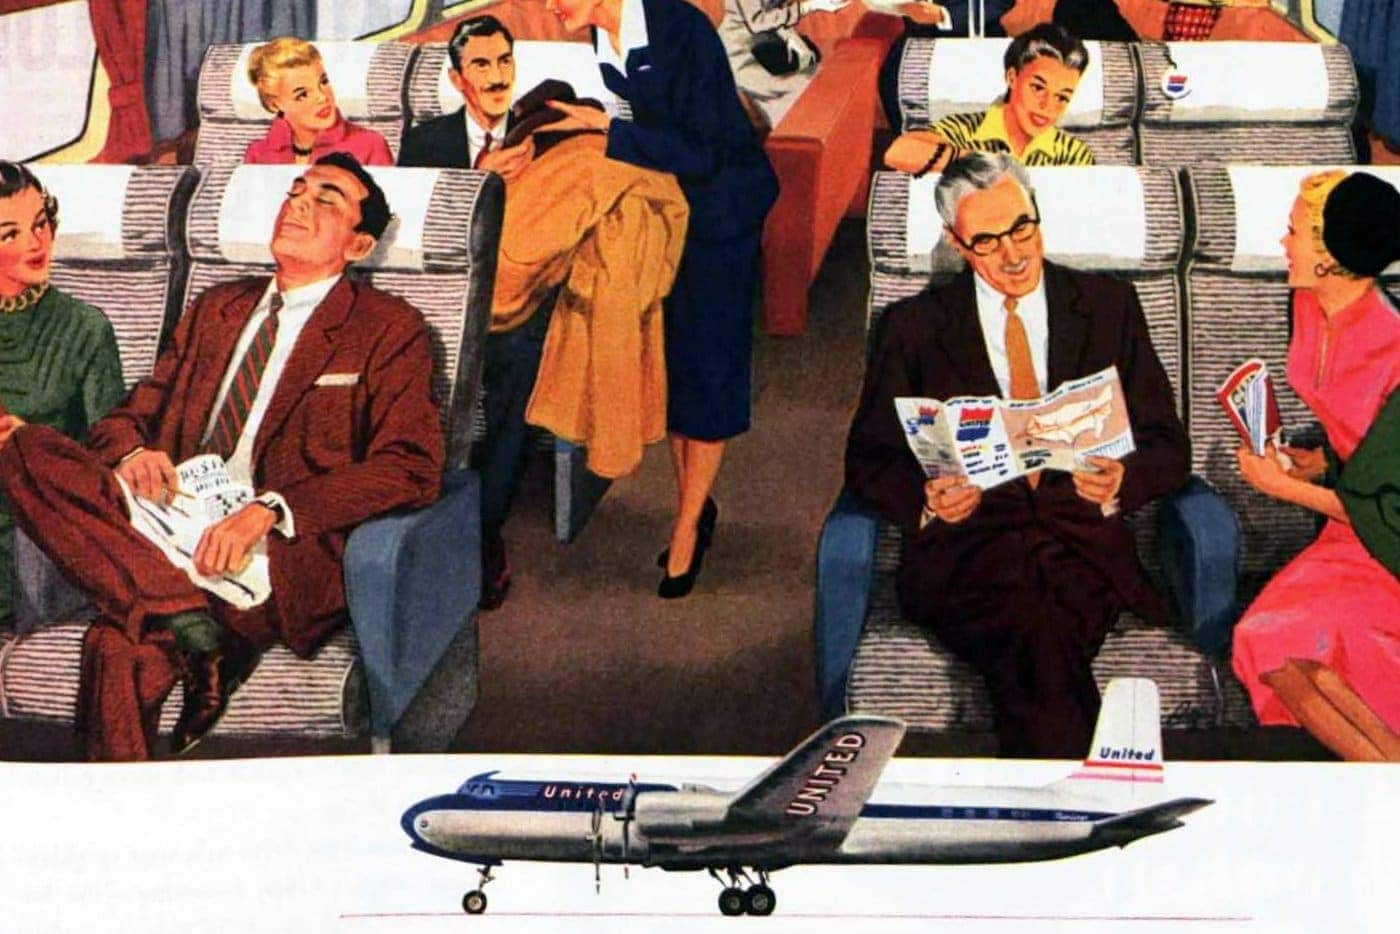 See what United Airlines flights back in the 50s